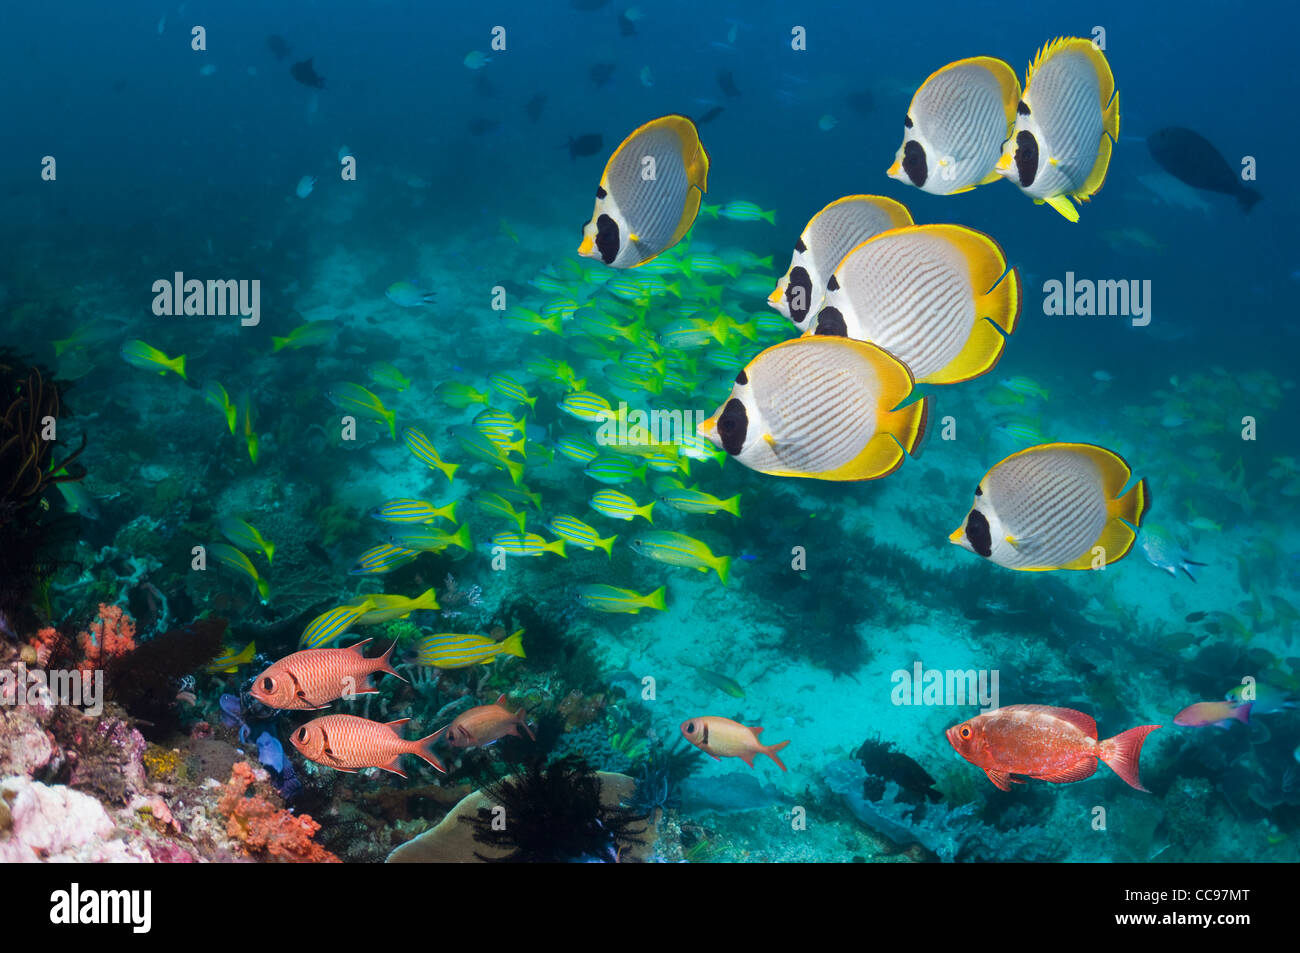 Panda butterflyfish (Chaetodon adiergastos) swimming over coral reef with snappers and soldierfish. Indonesia. - Stock Image